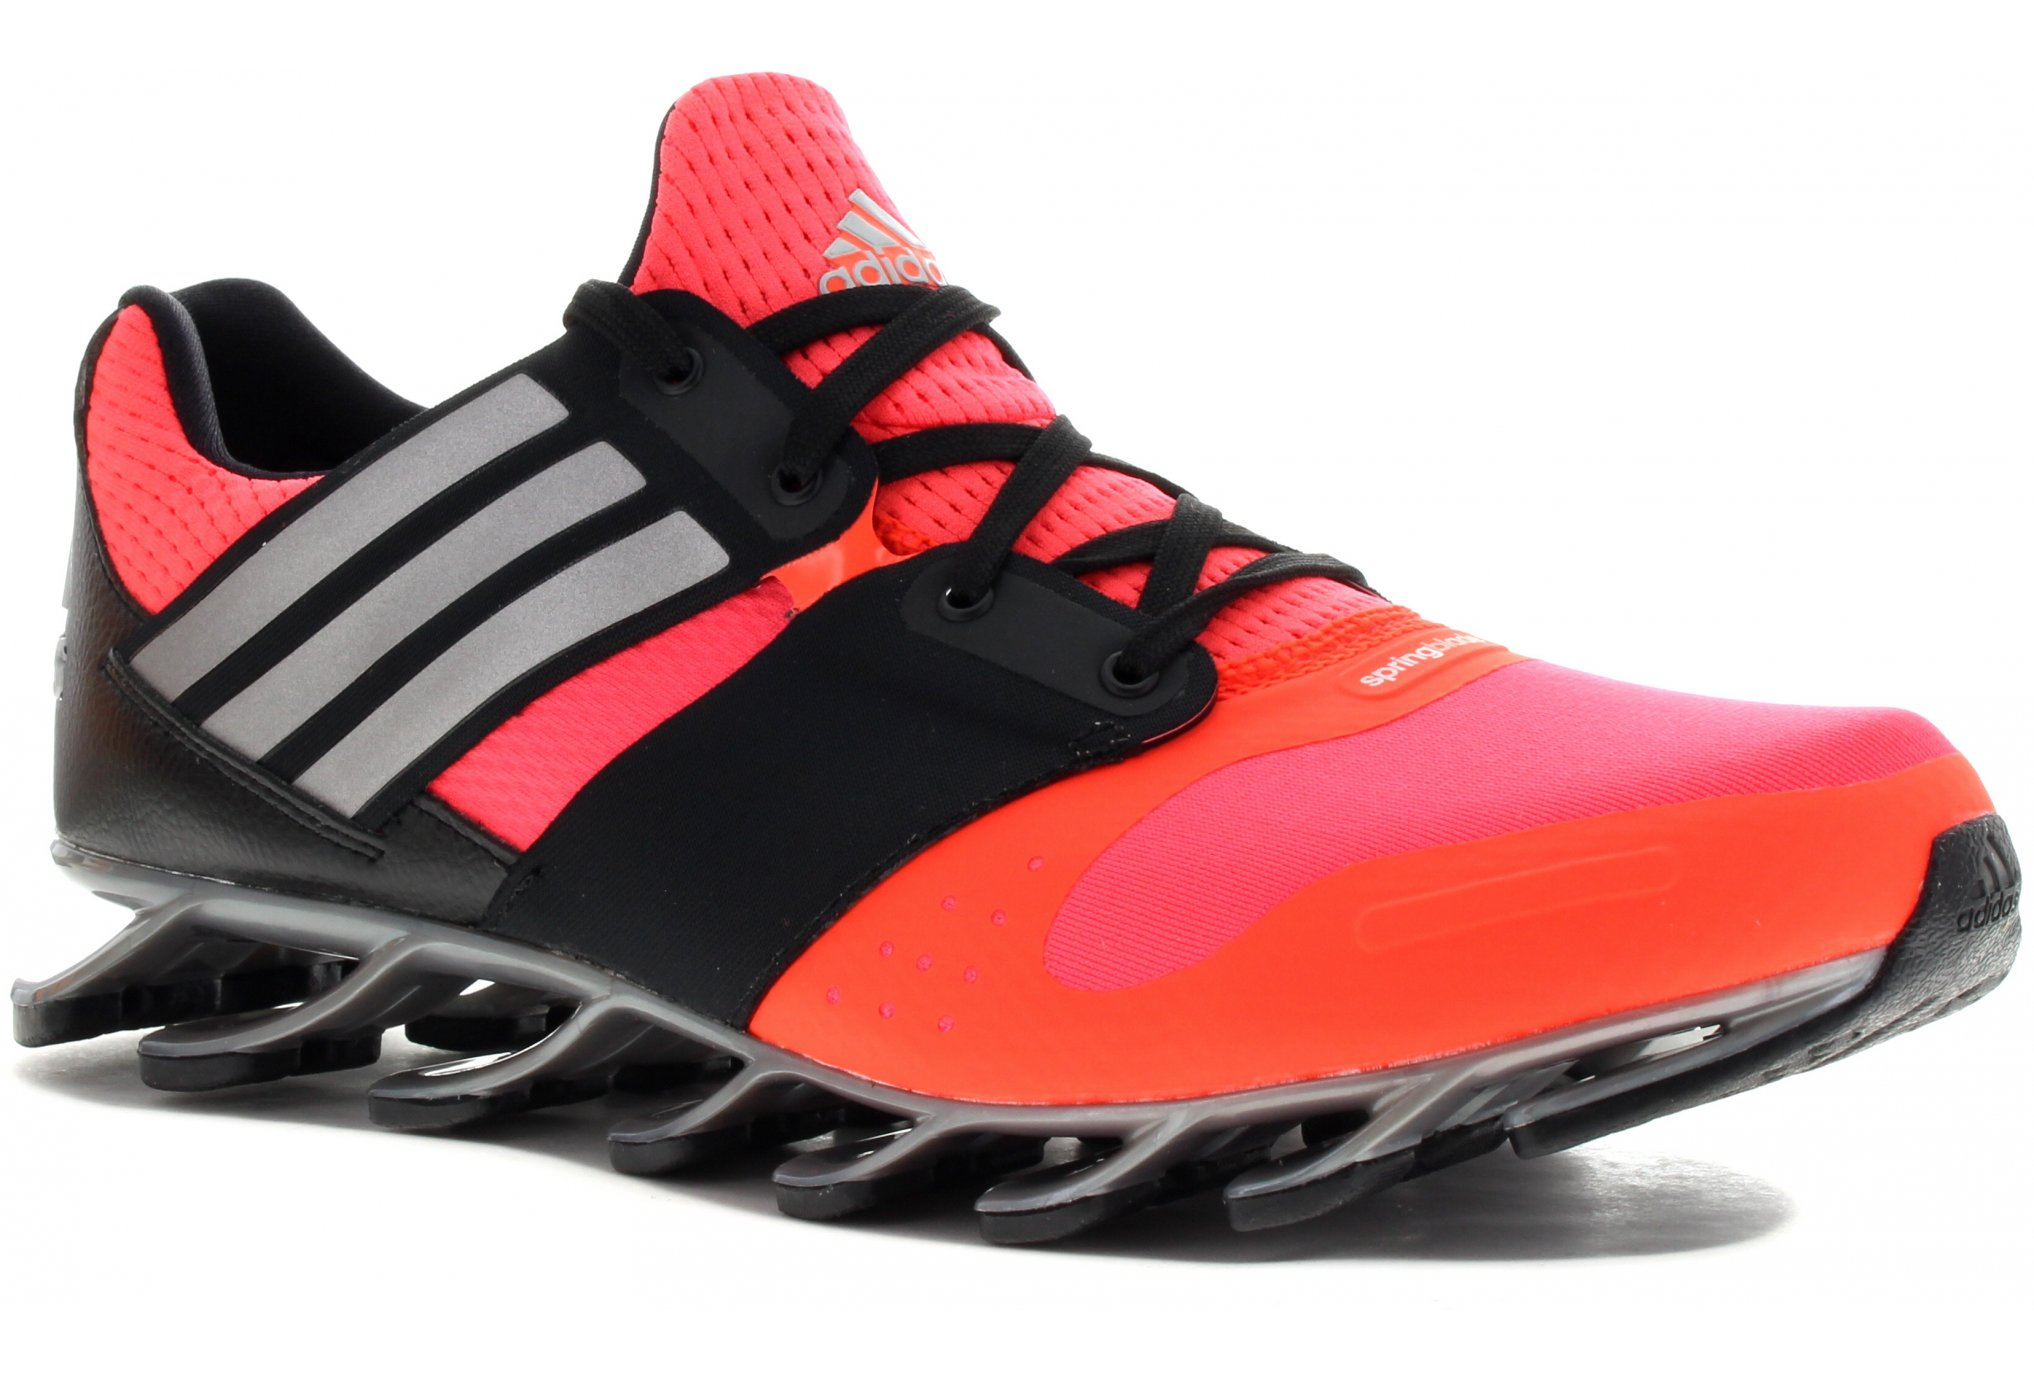 adidas Springblade Solyce M pas cher Chaussures homme